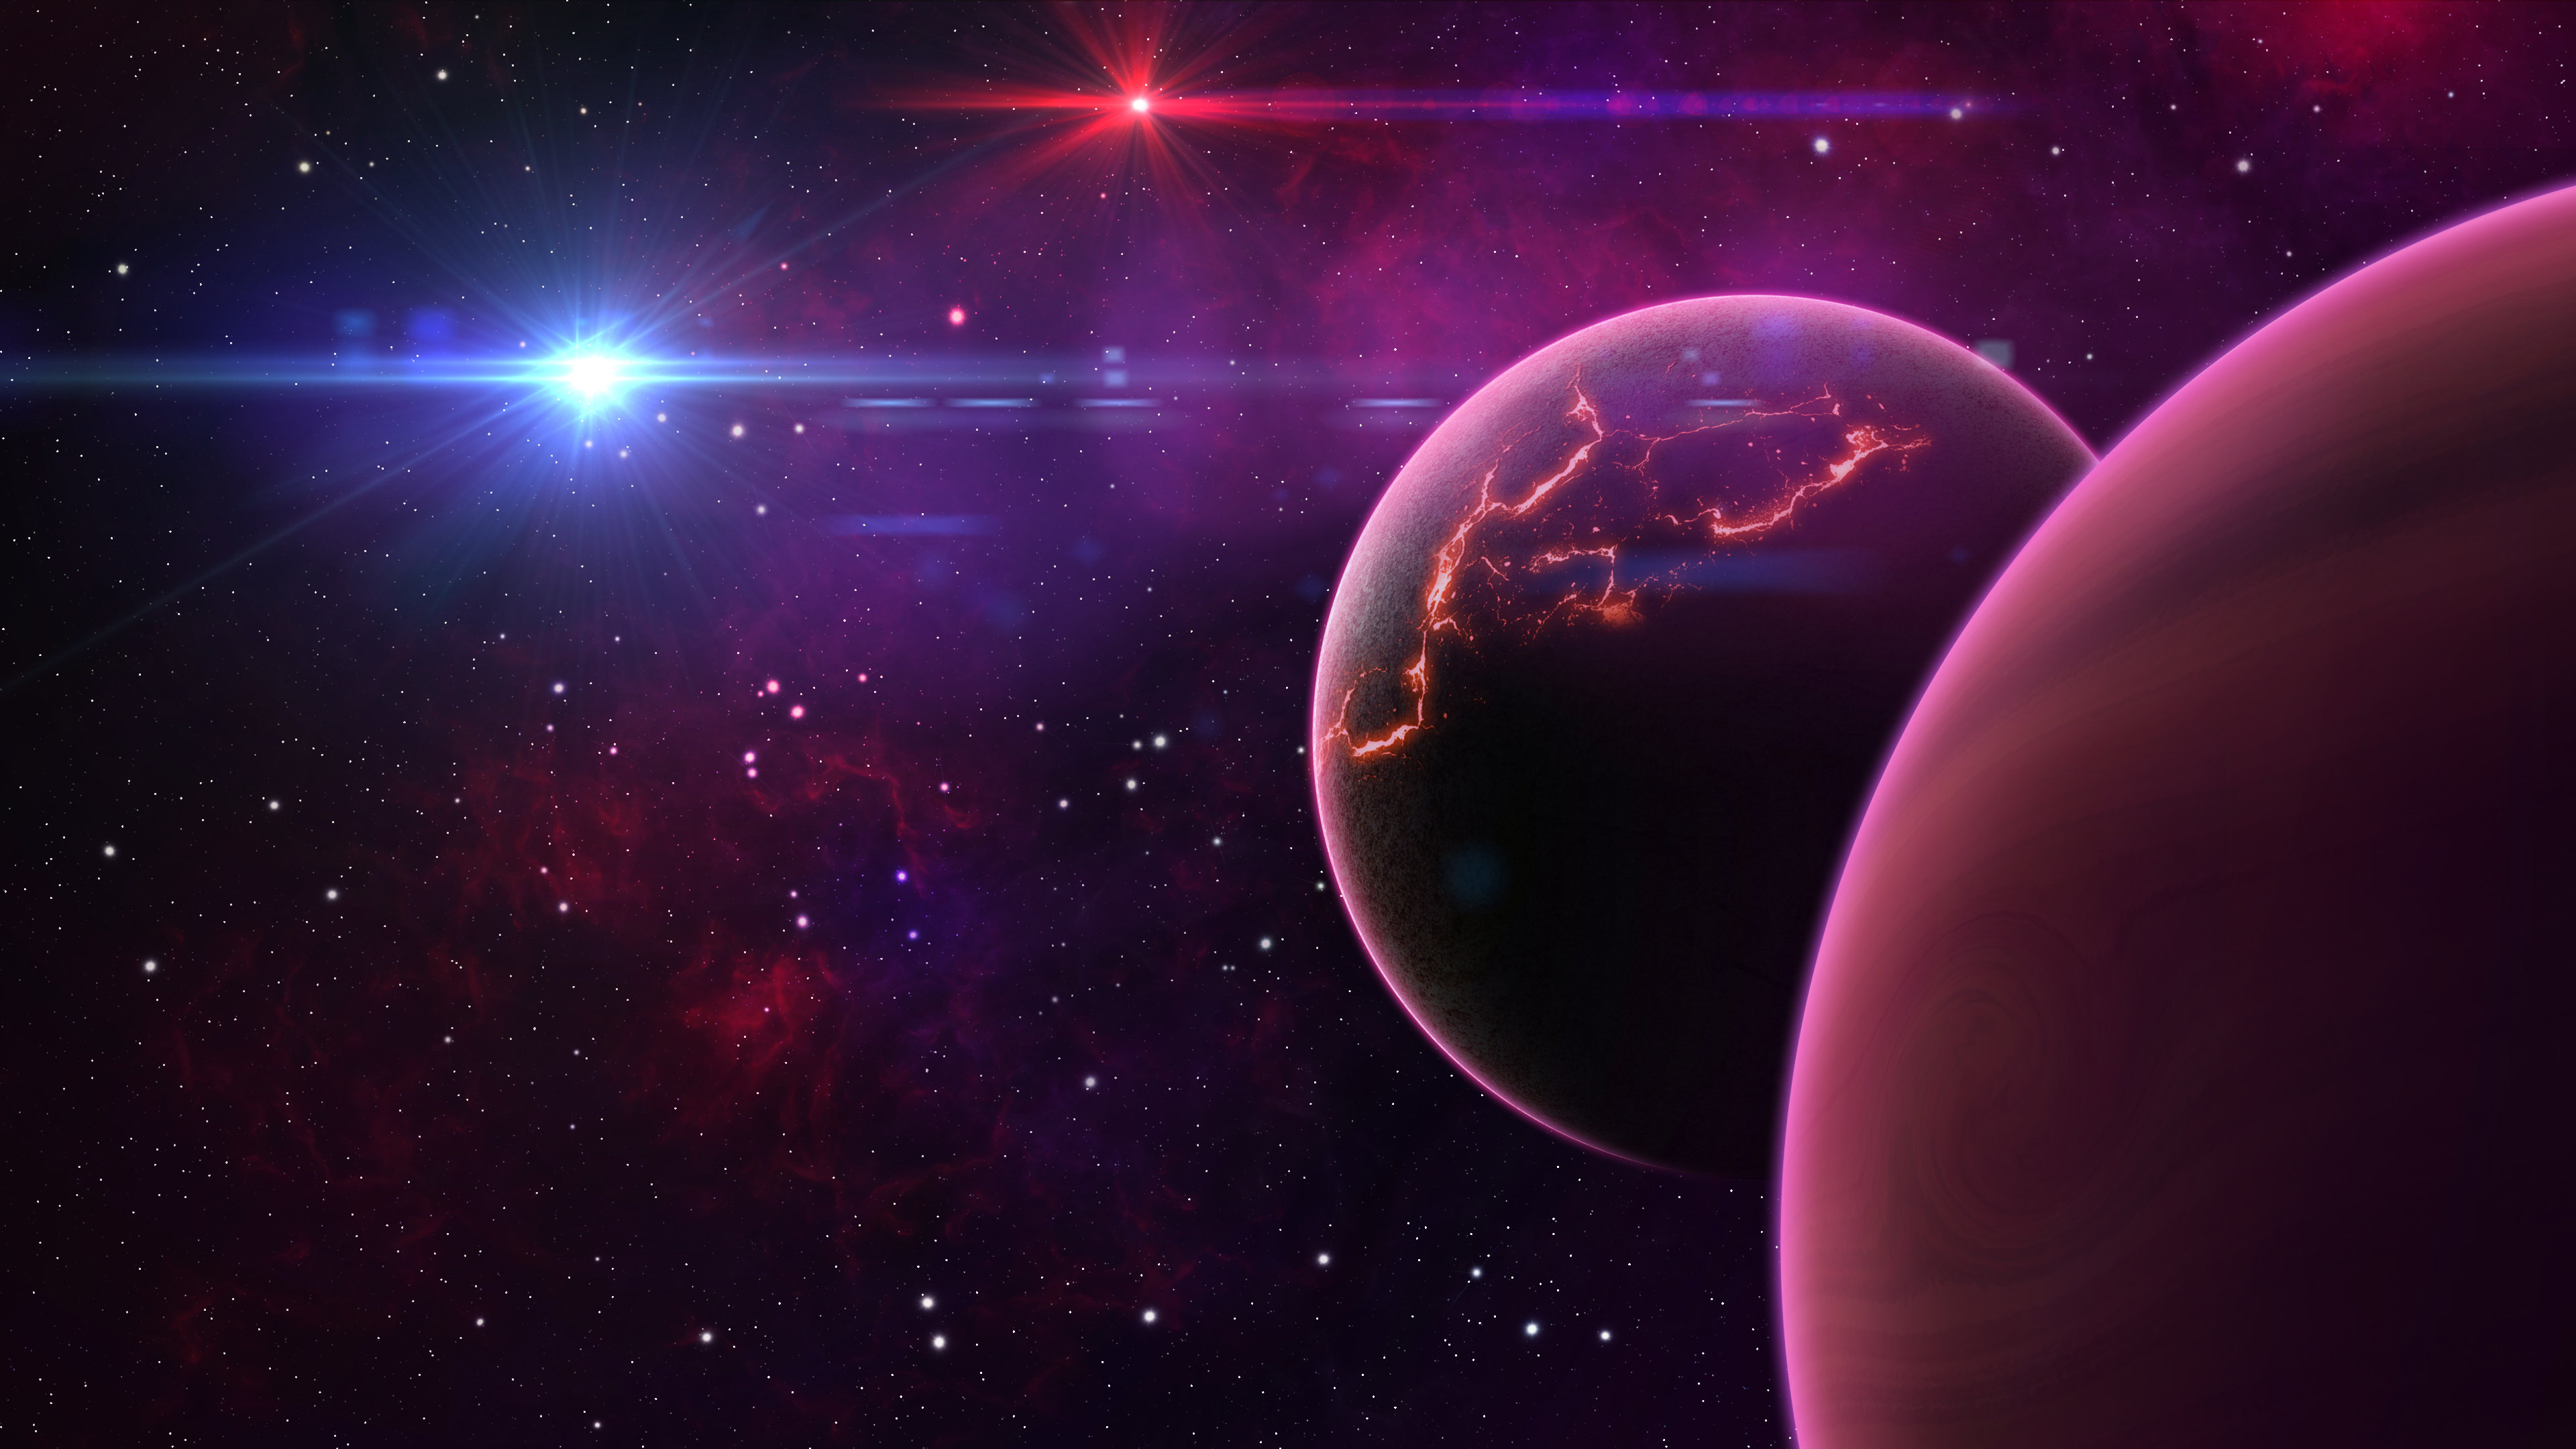 space 4k ultra hd wallpaper 3840x2160